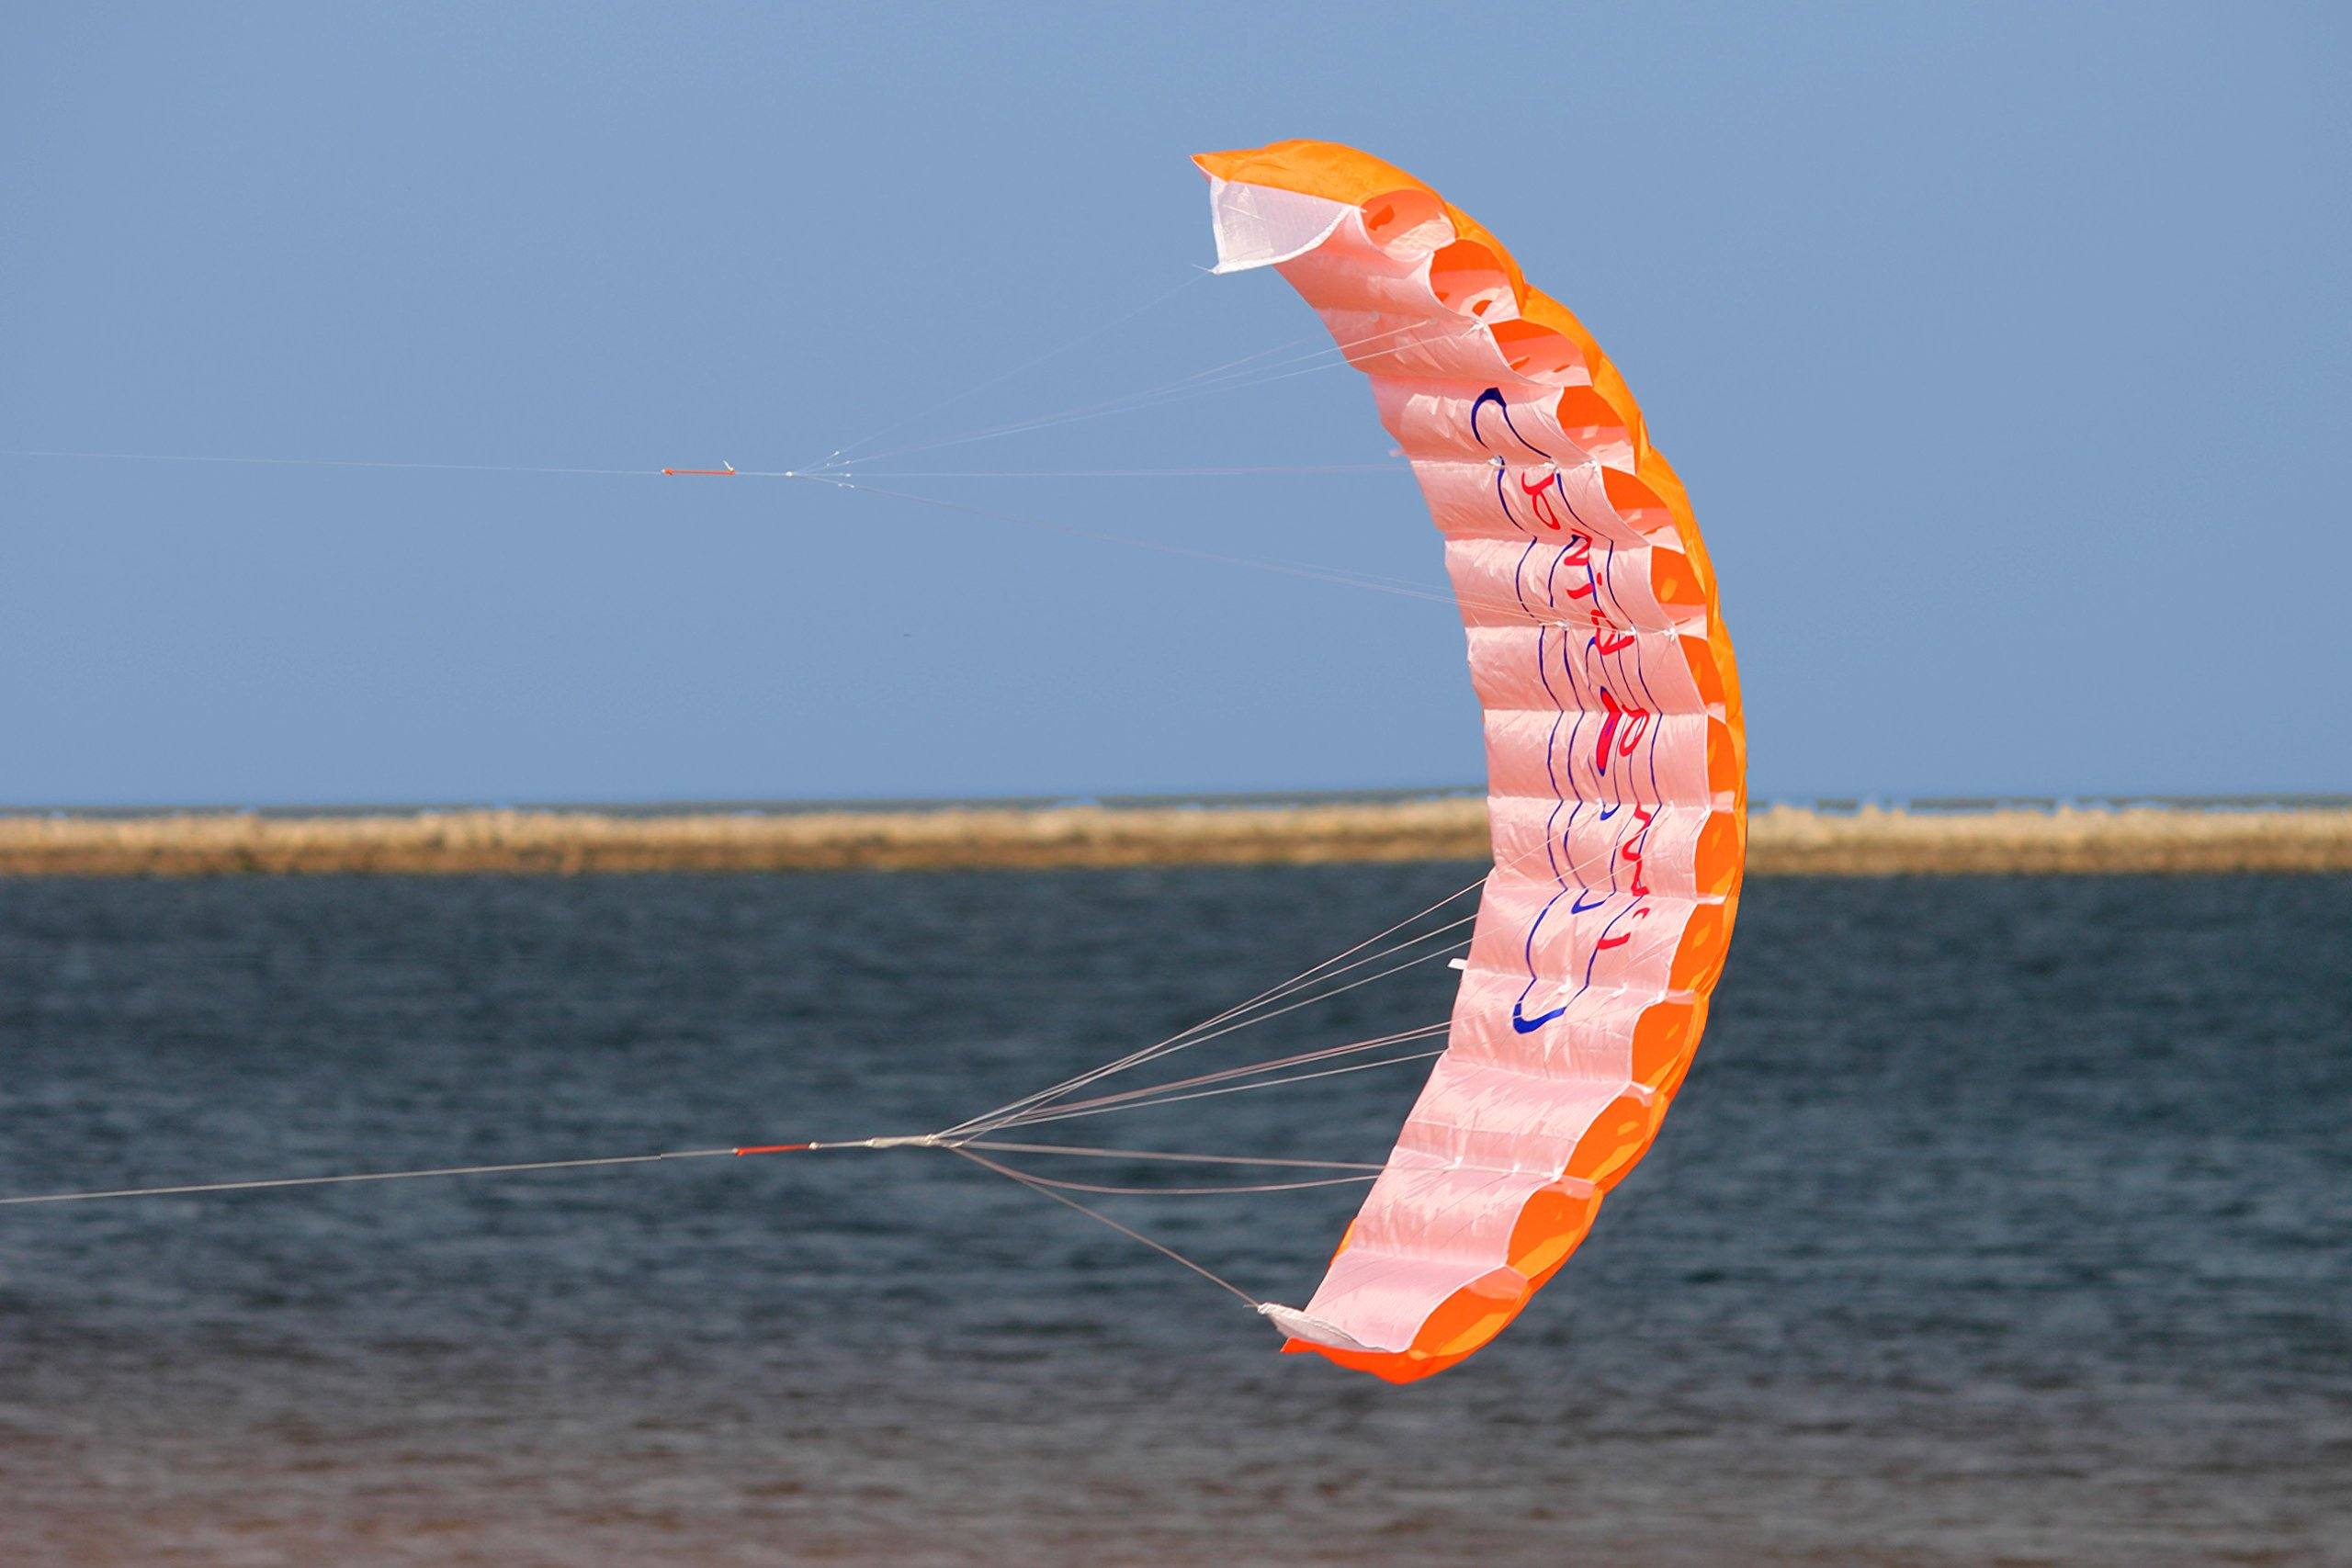 Hengda Kite NEW 1.4m Power Kite Outdoor FUN Toys Parafoil Parachute Dual Line Surfing ORANGE by Hengda kite (Image #2)